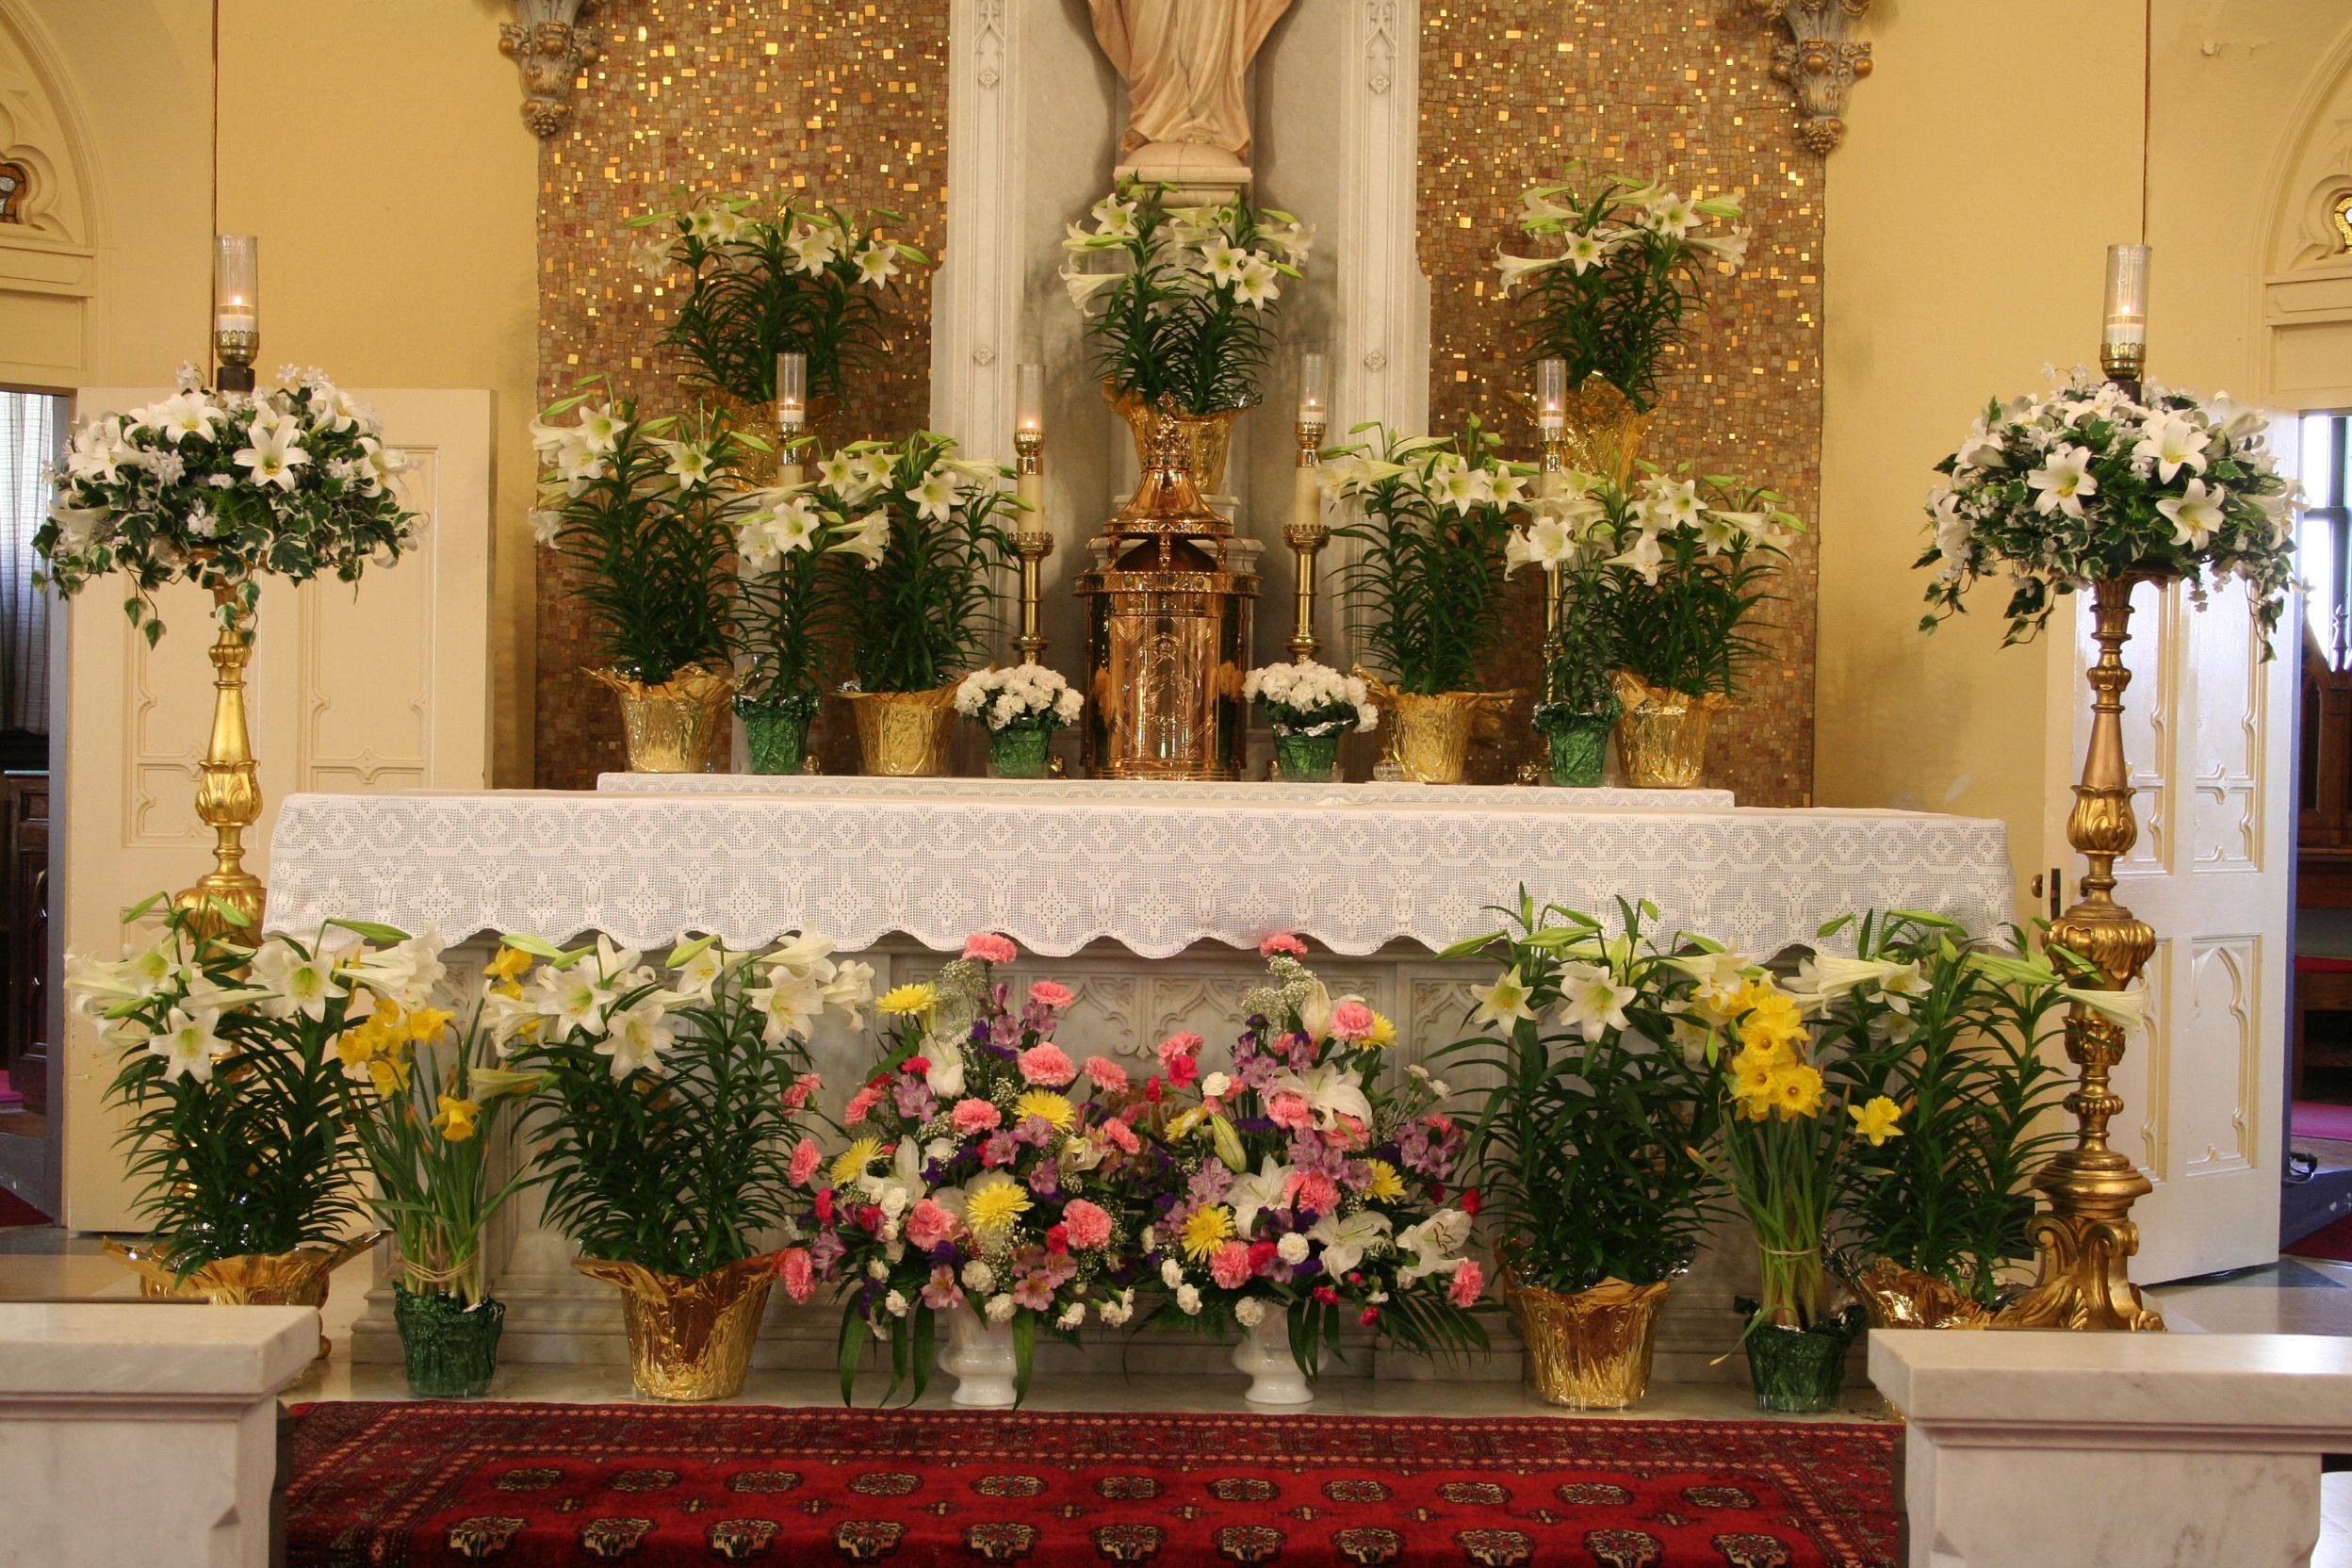 Church decorated for easter in the south